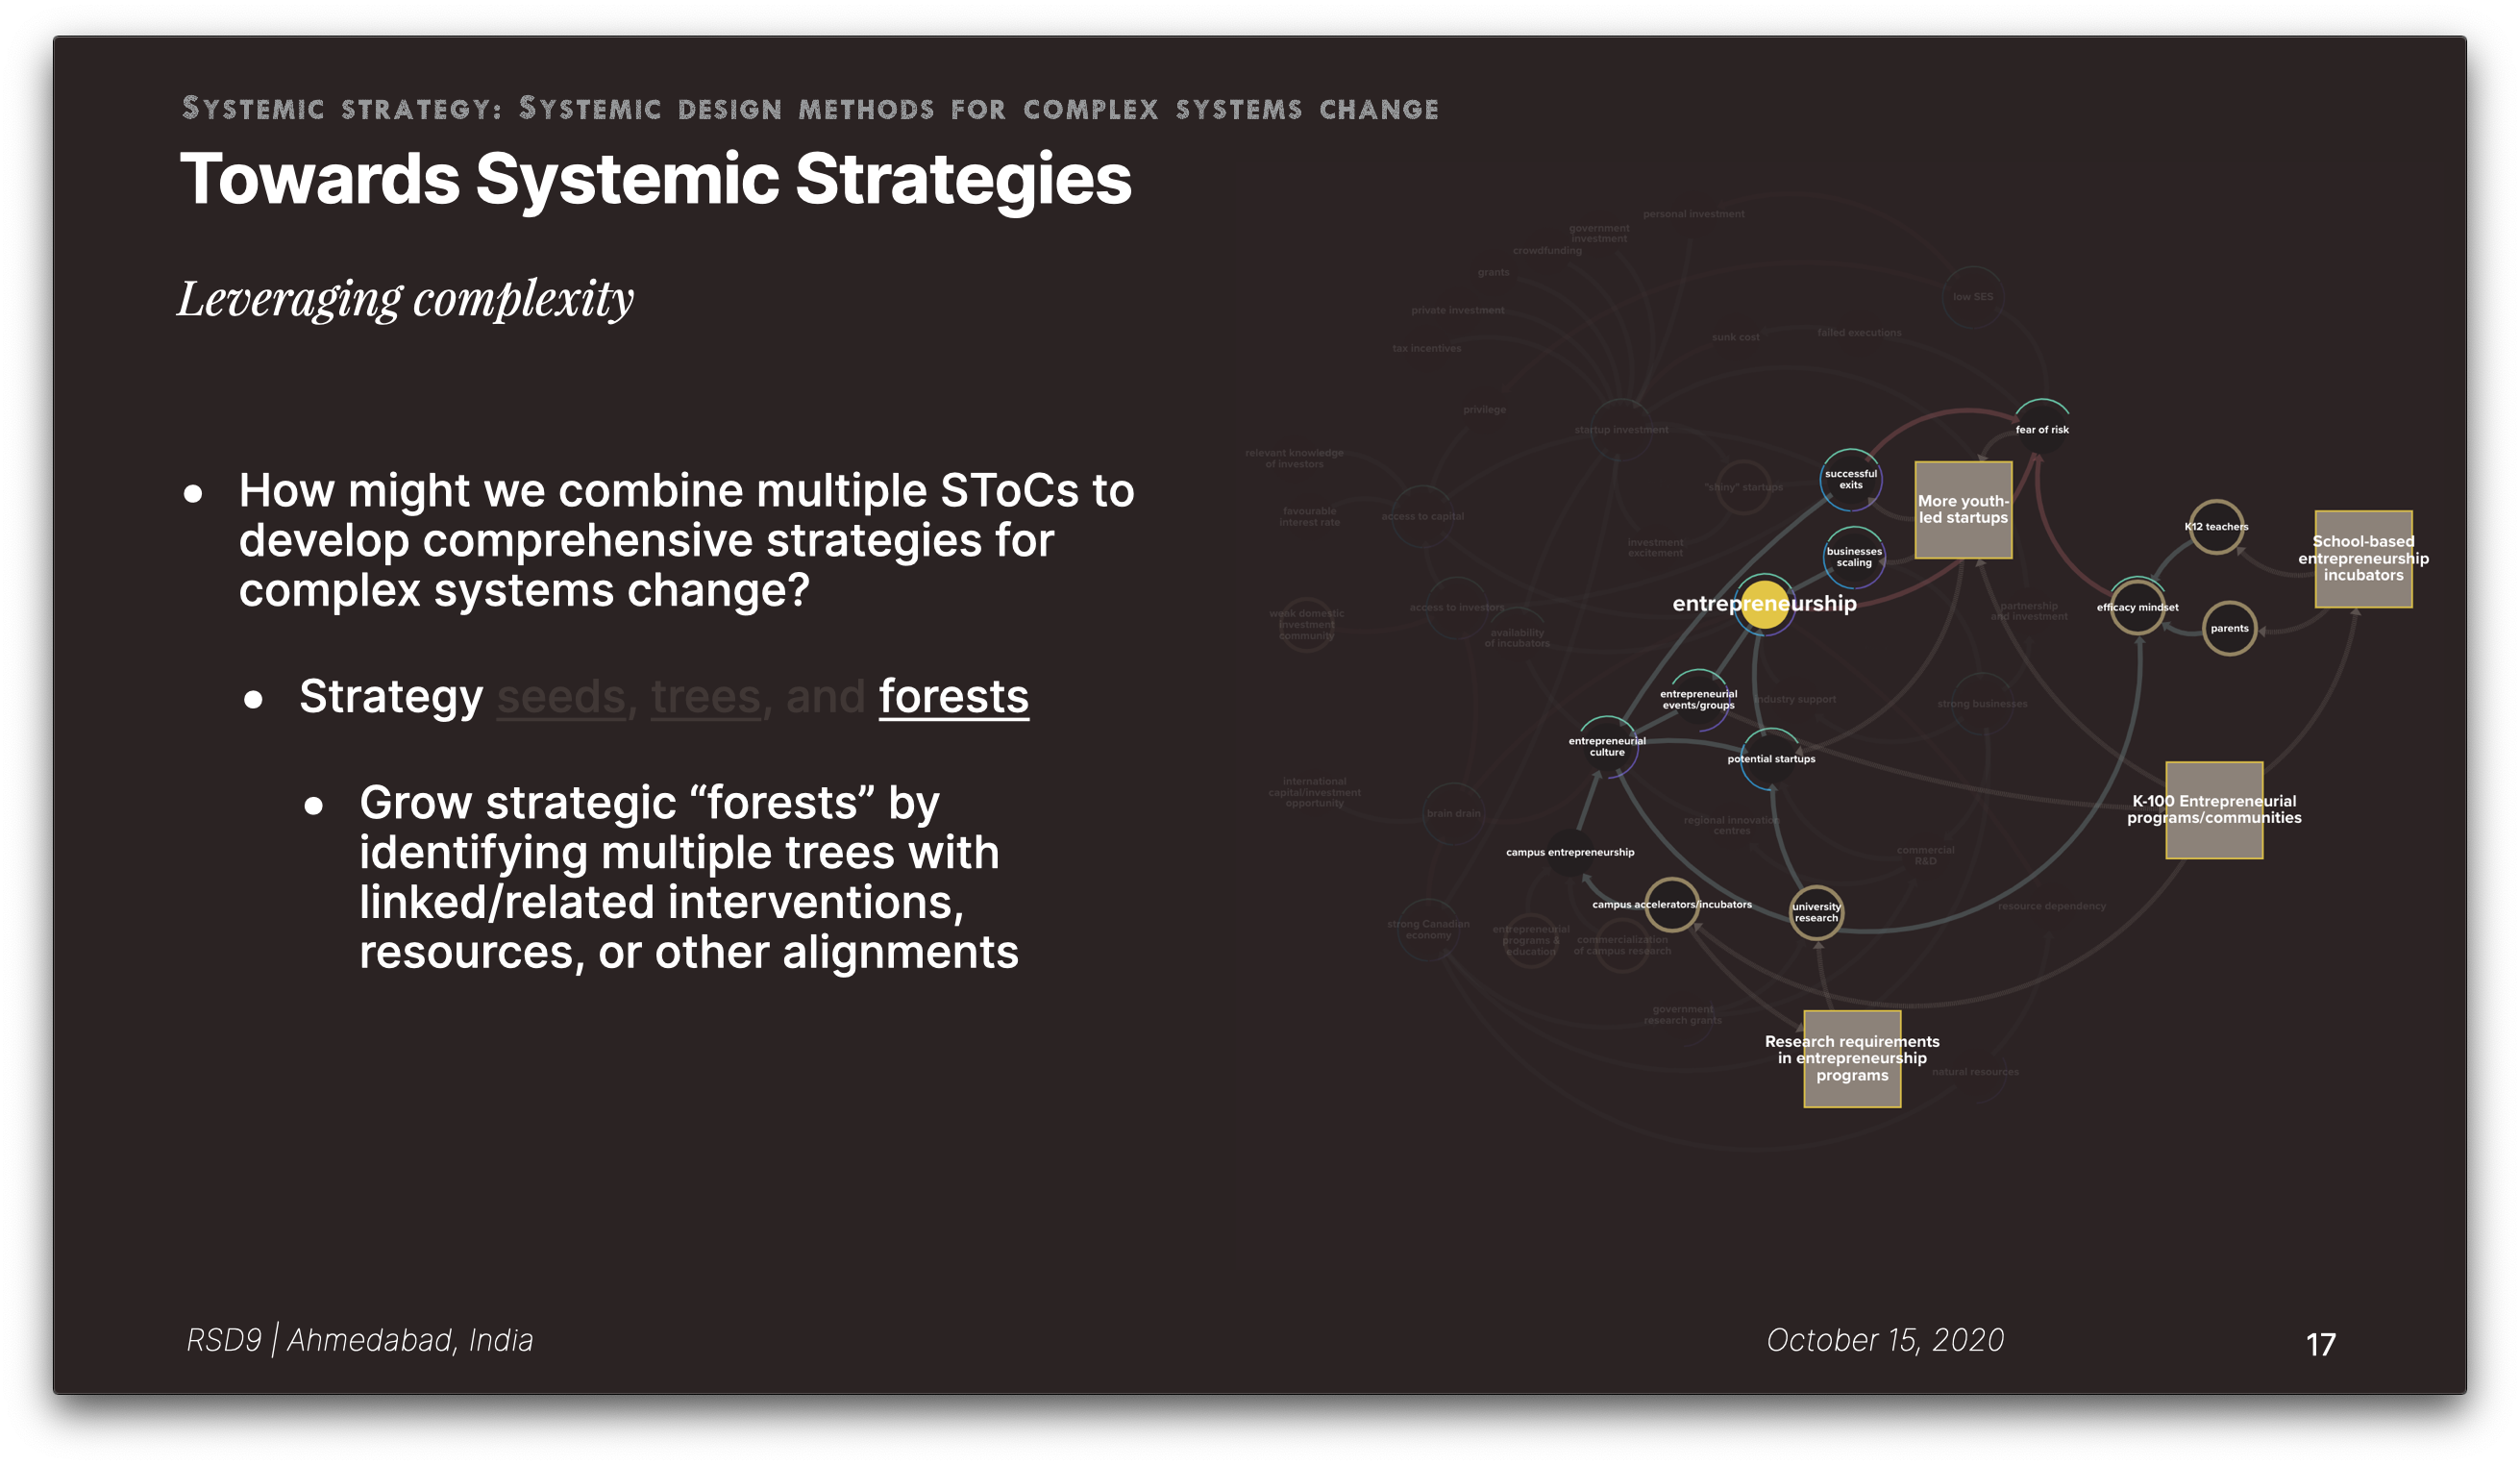 Towards systemic strategies: strategy forests